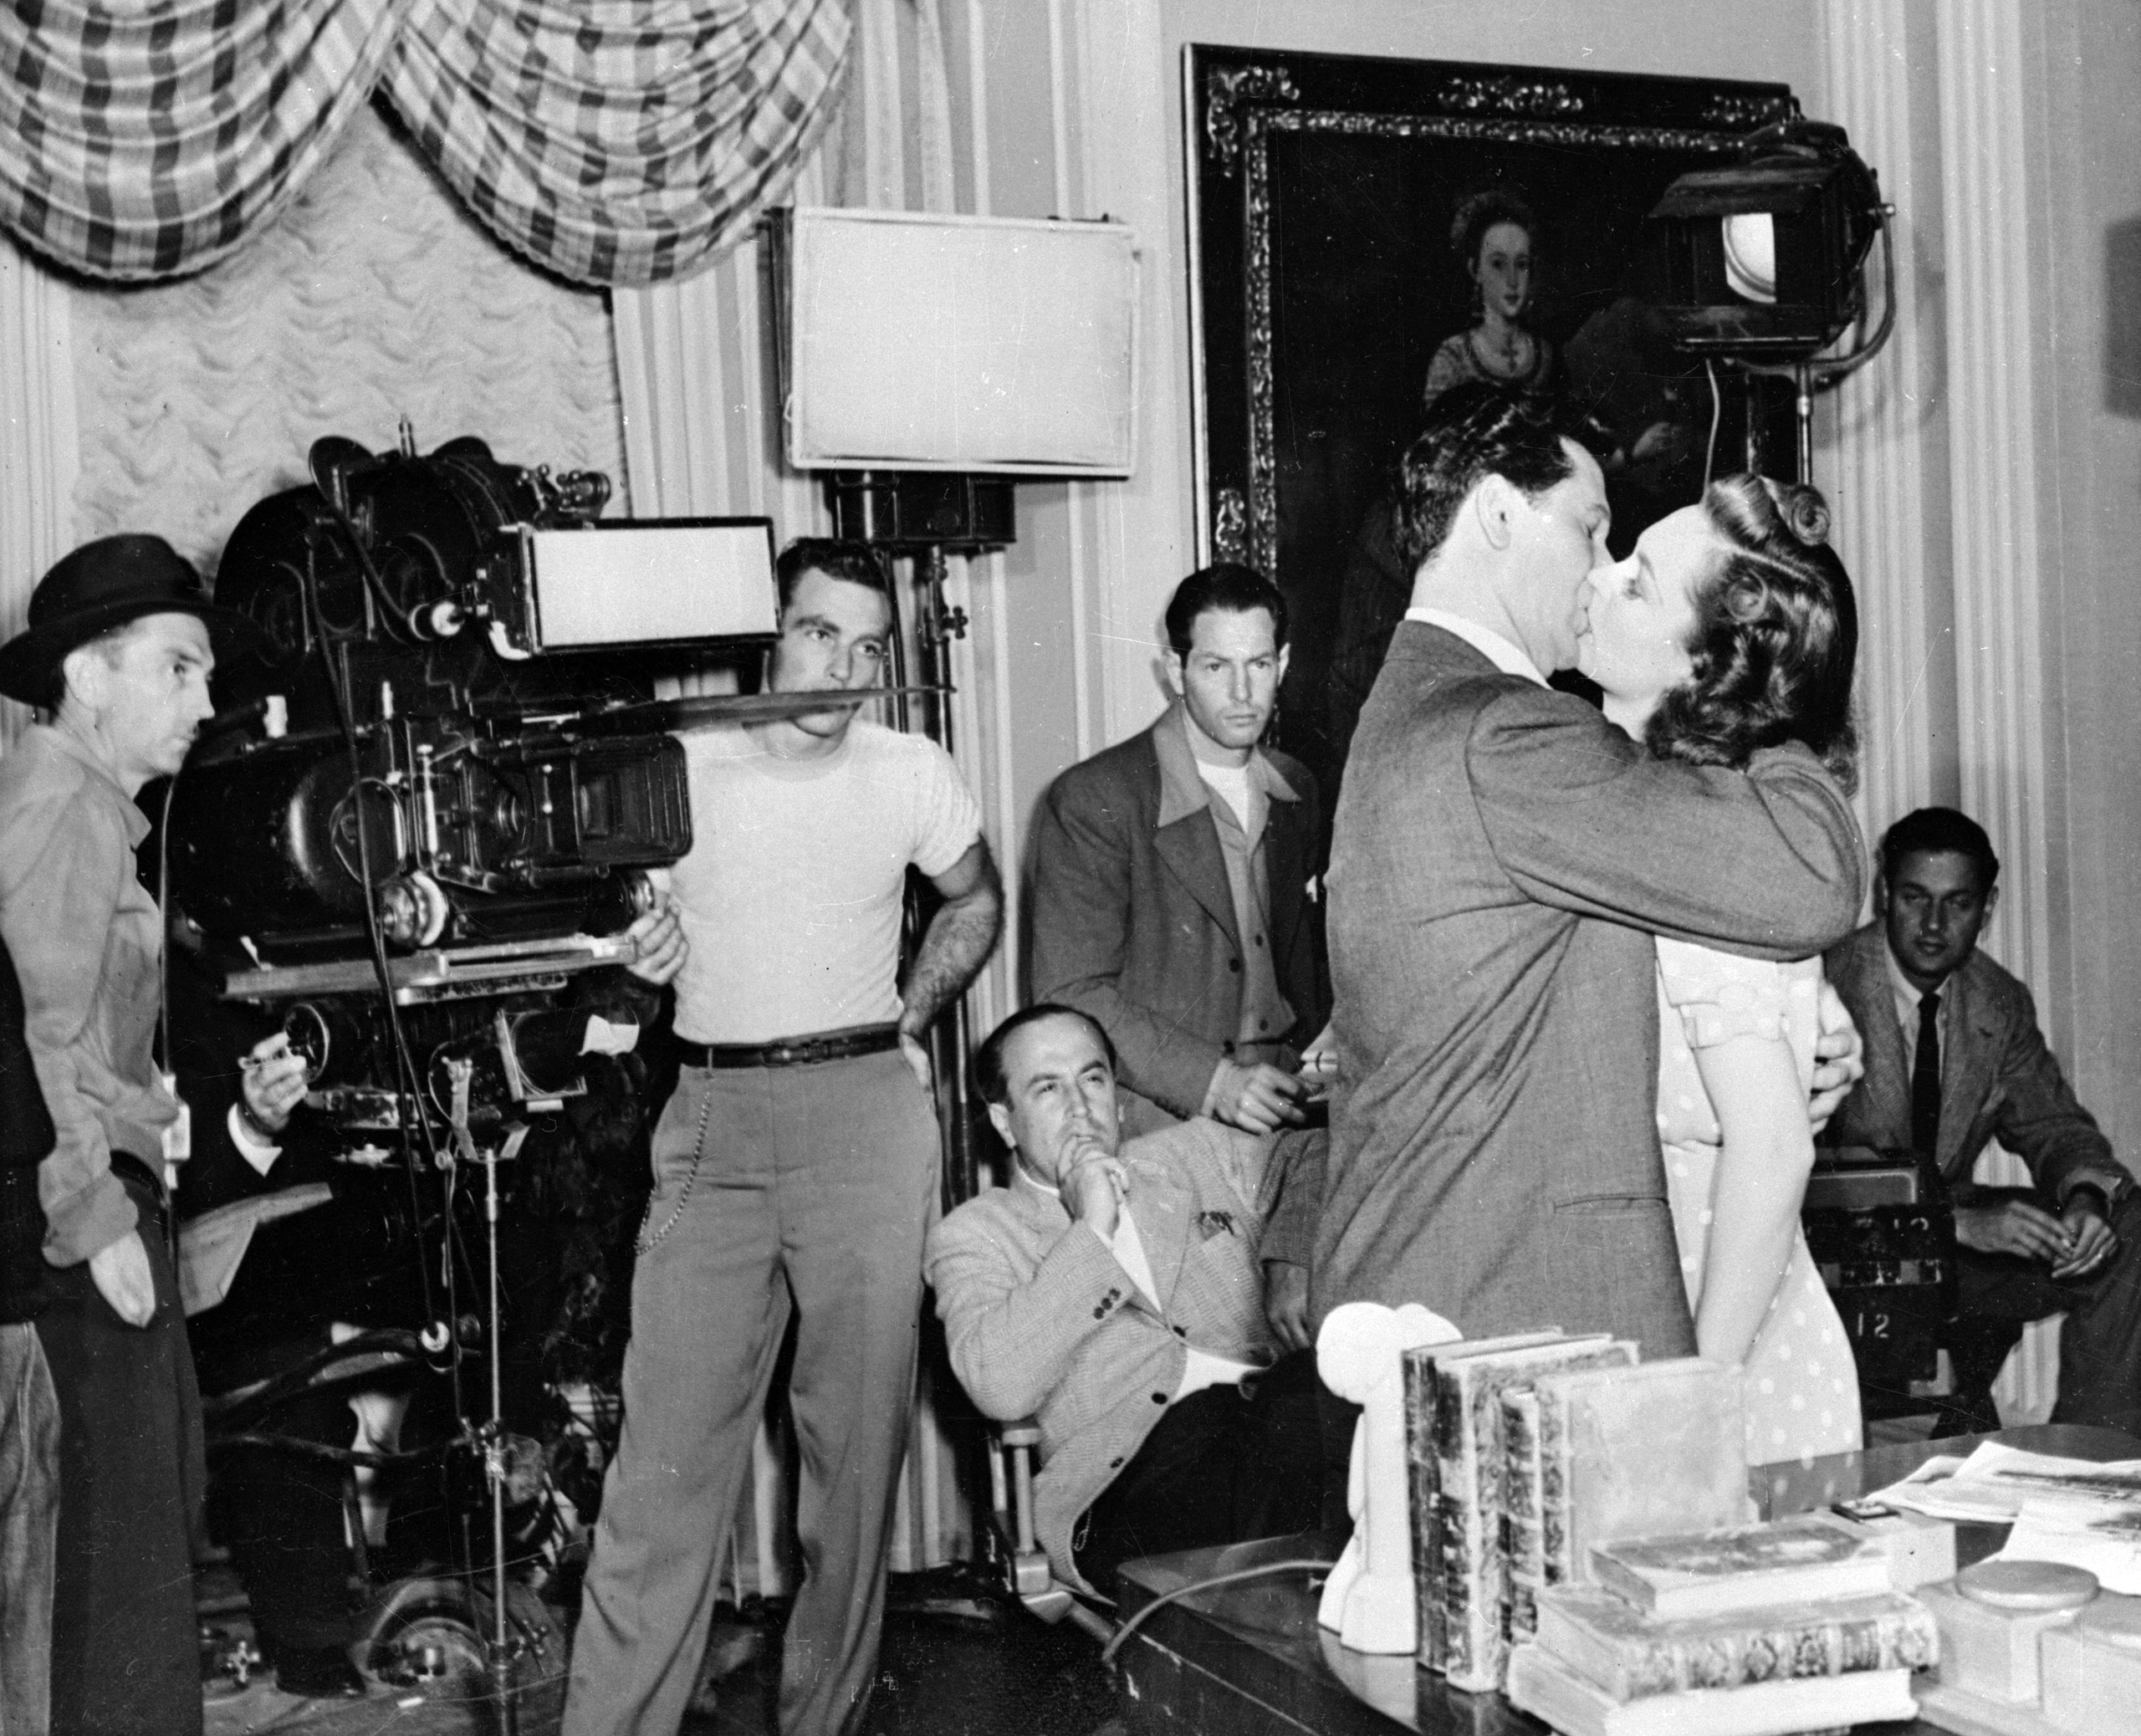 A film crew shoot a kissing scene at the Warner Brothers Film Studios in Hollywood, 1946.